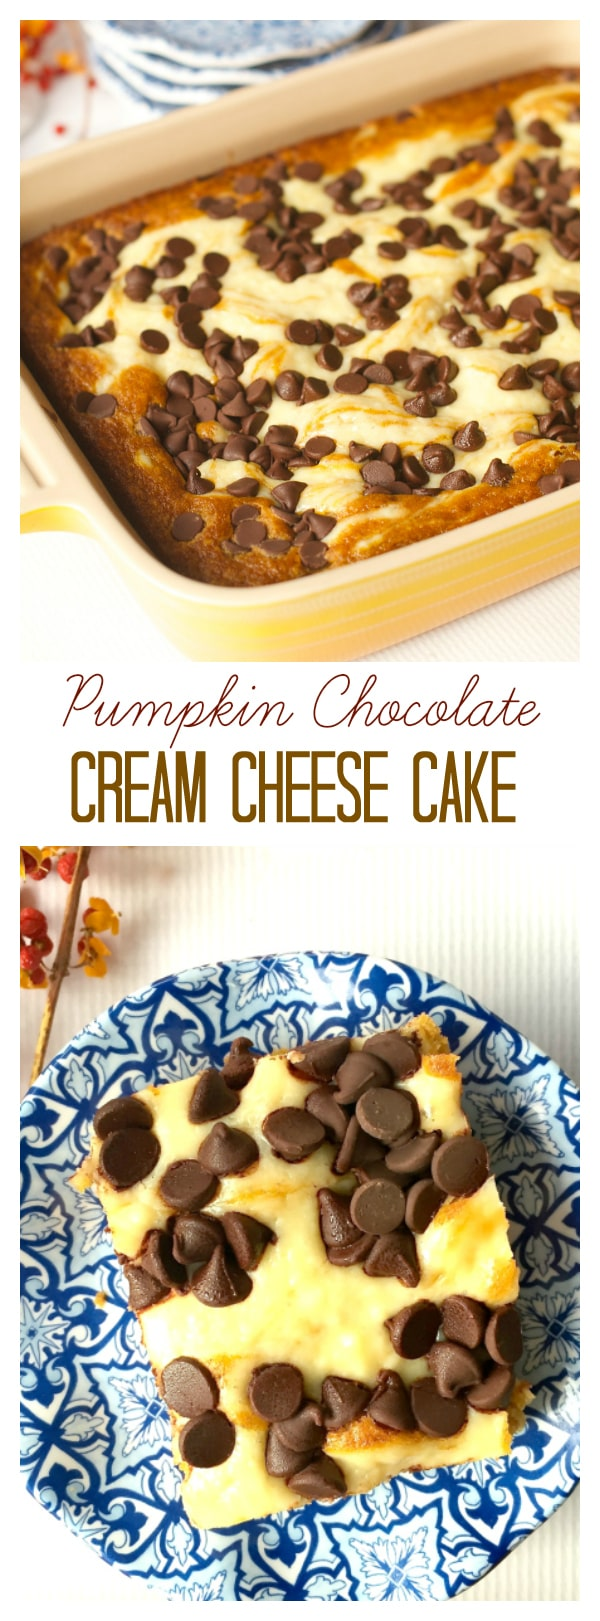 Pumpkin Chocolate Cream Cheese Cake